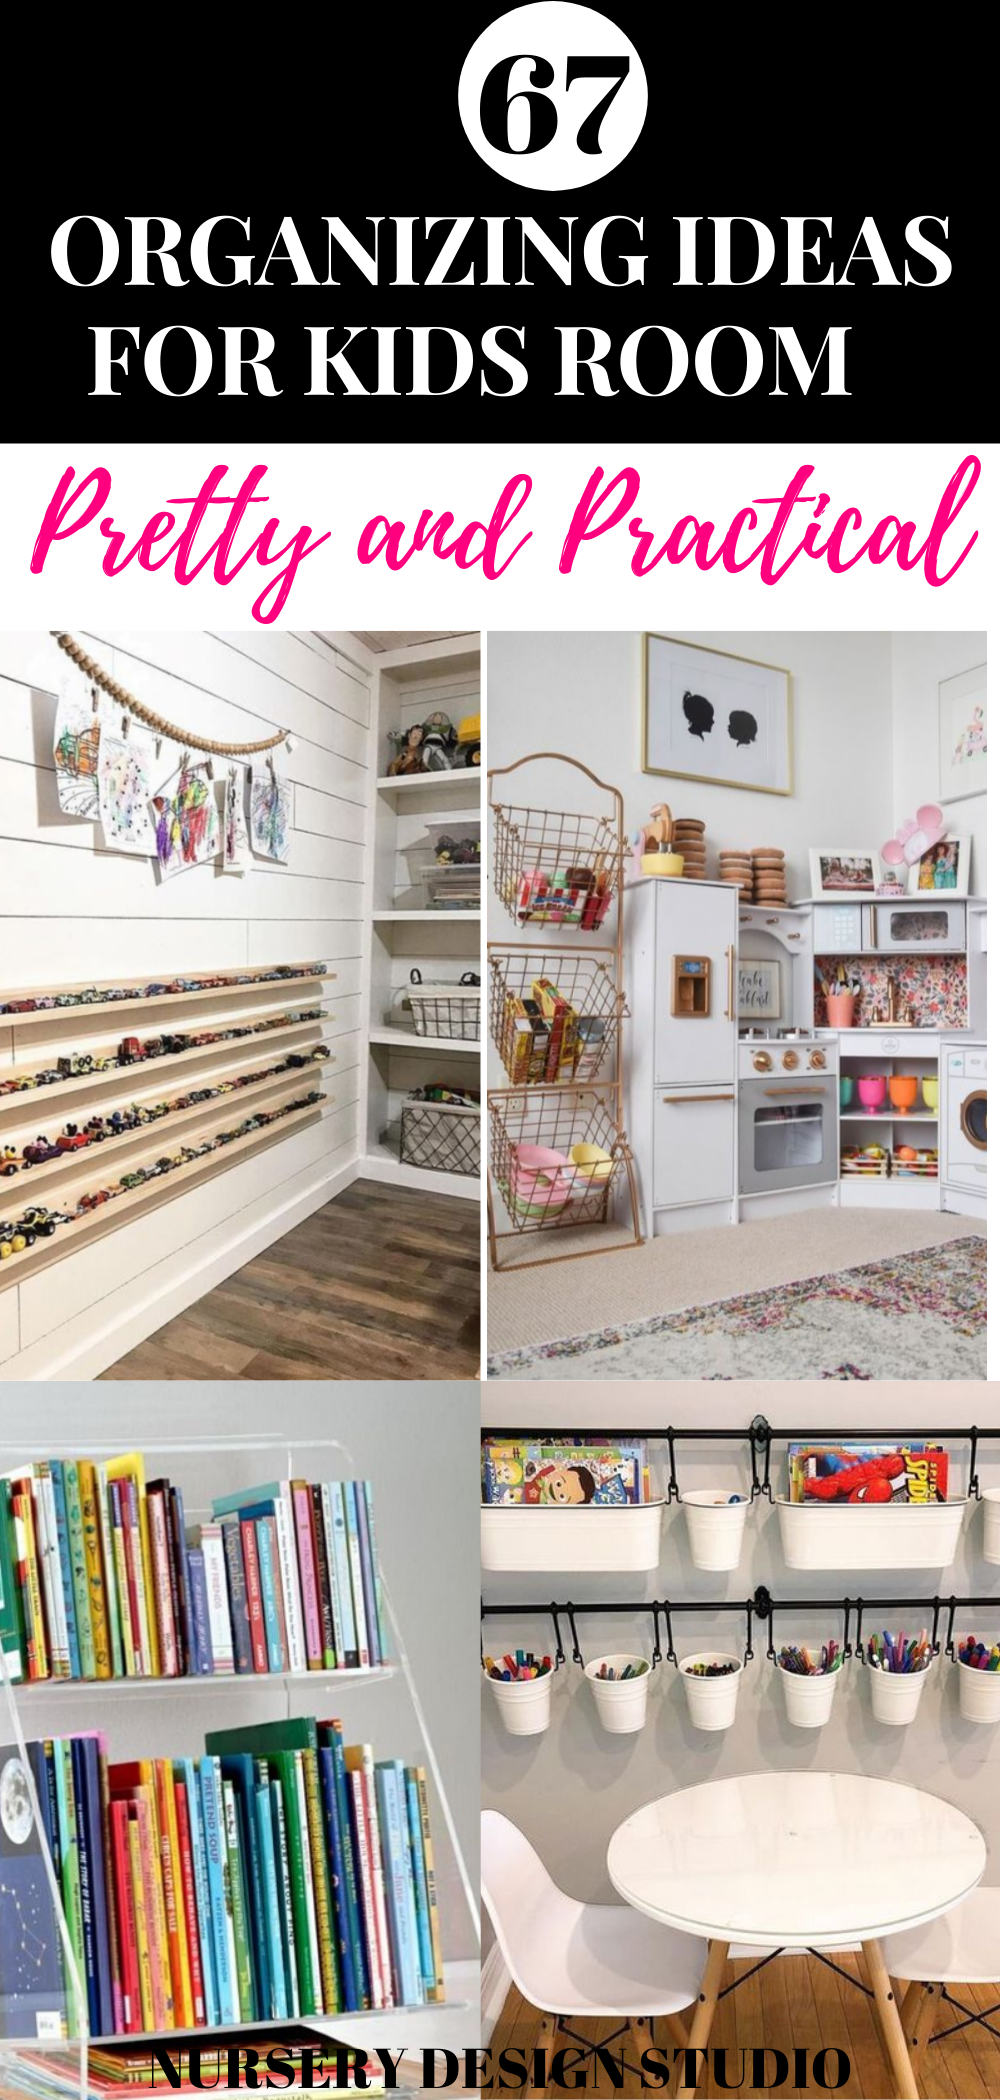 67 ORGANIZING IDEAS FOR KIDS ROOM